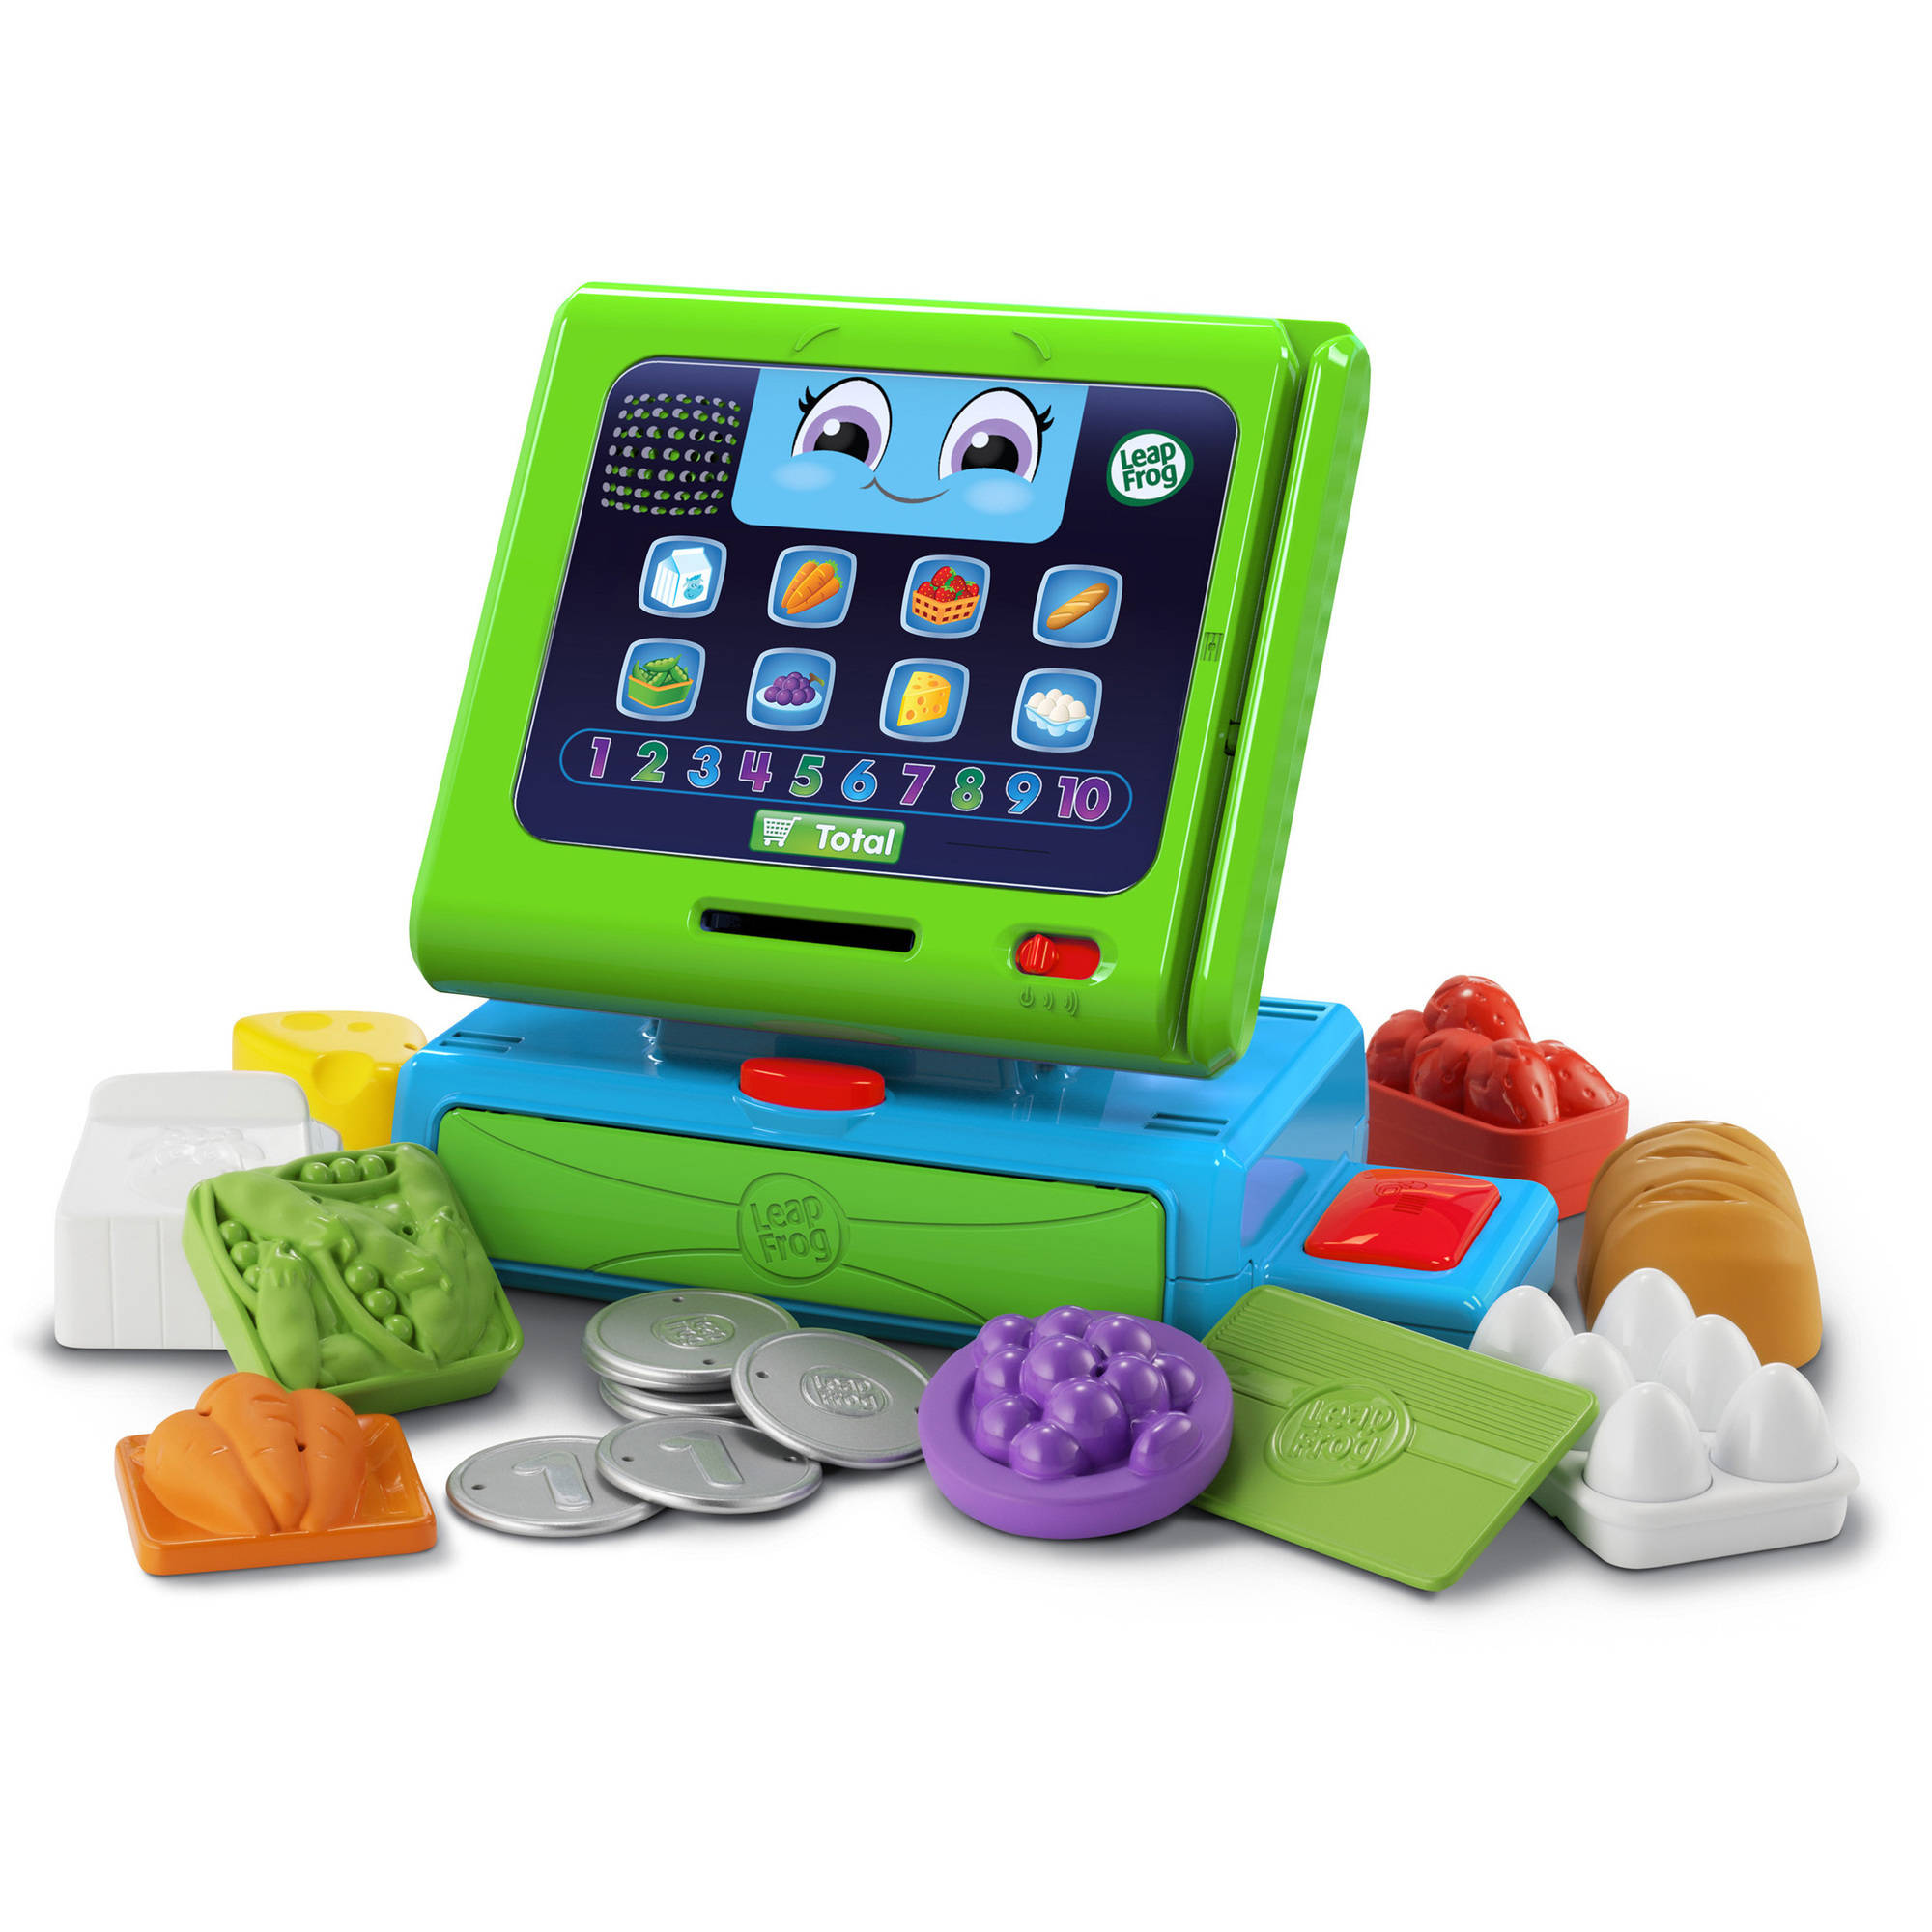 LeapFrog Count Along Cash Register by LeapFrog